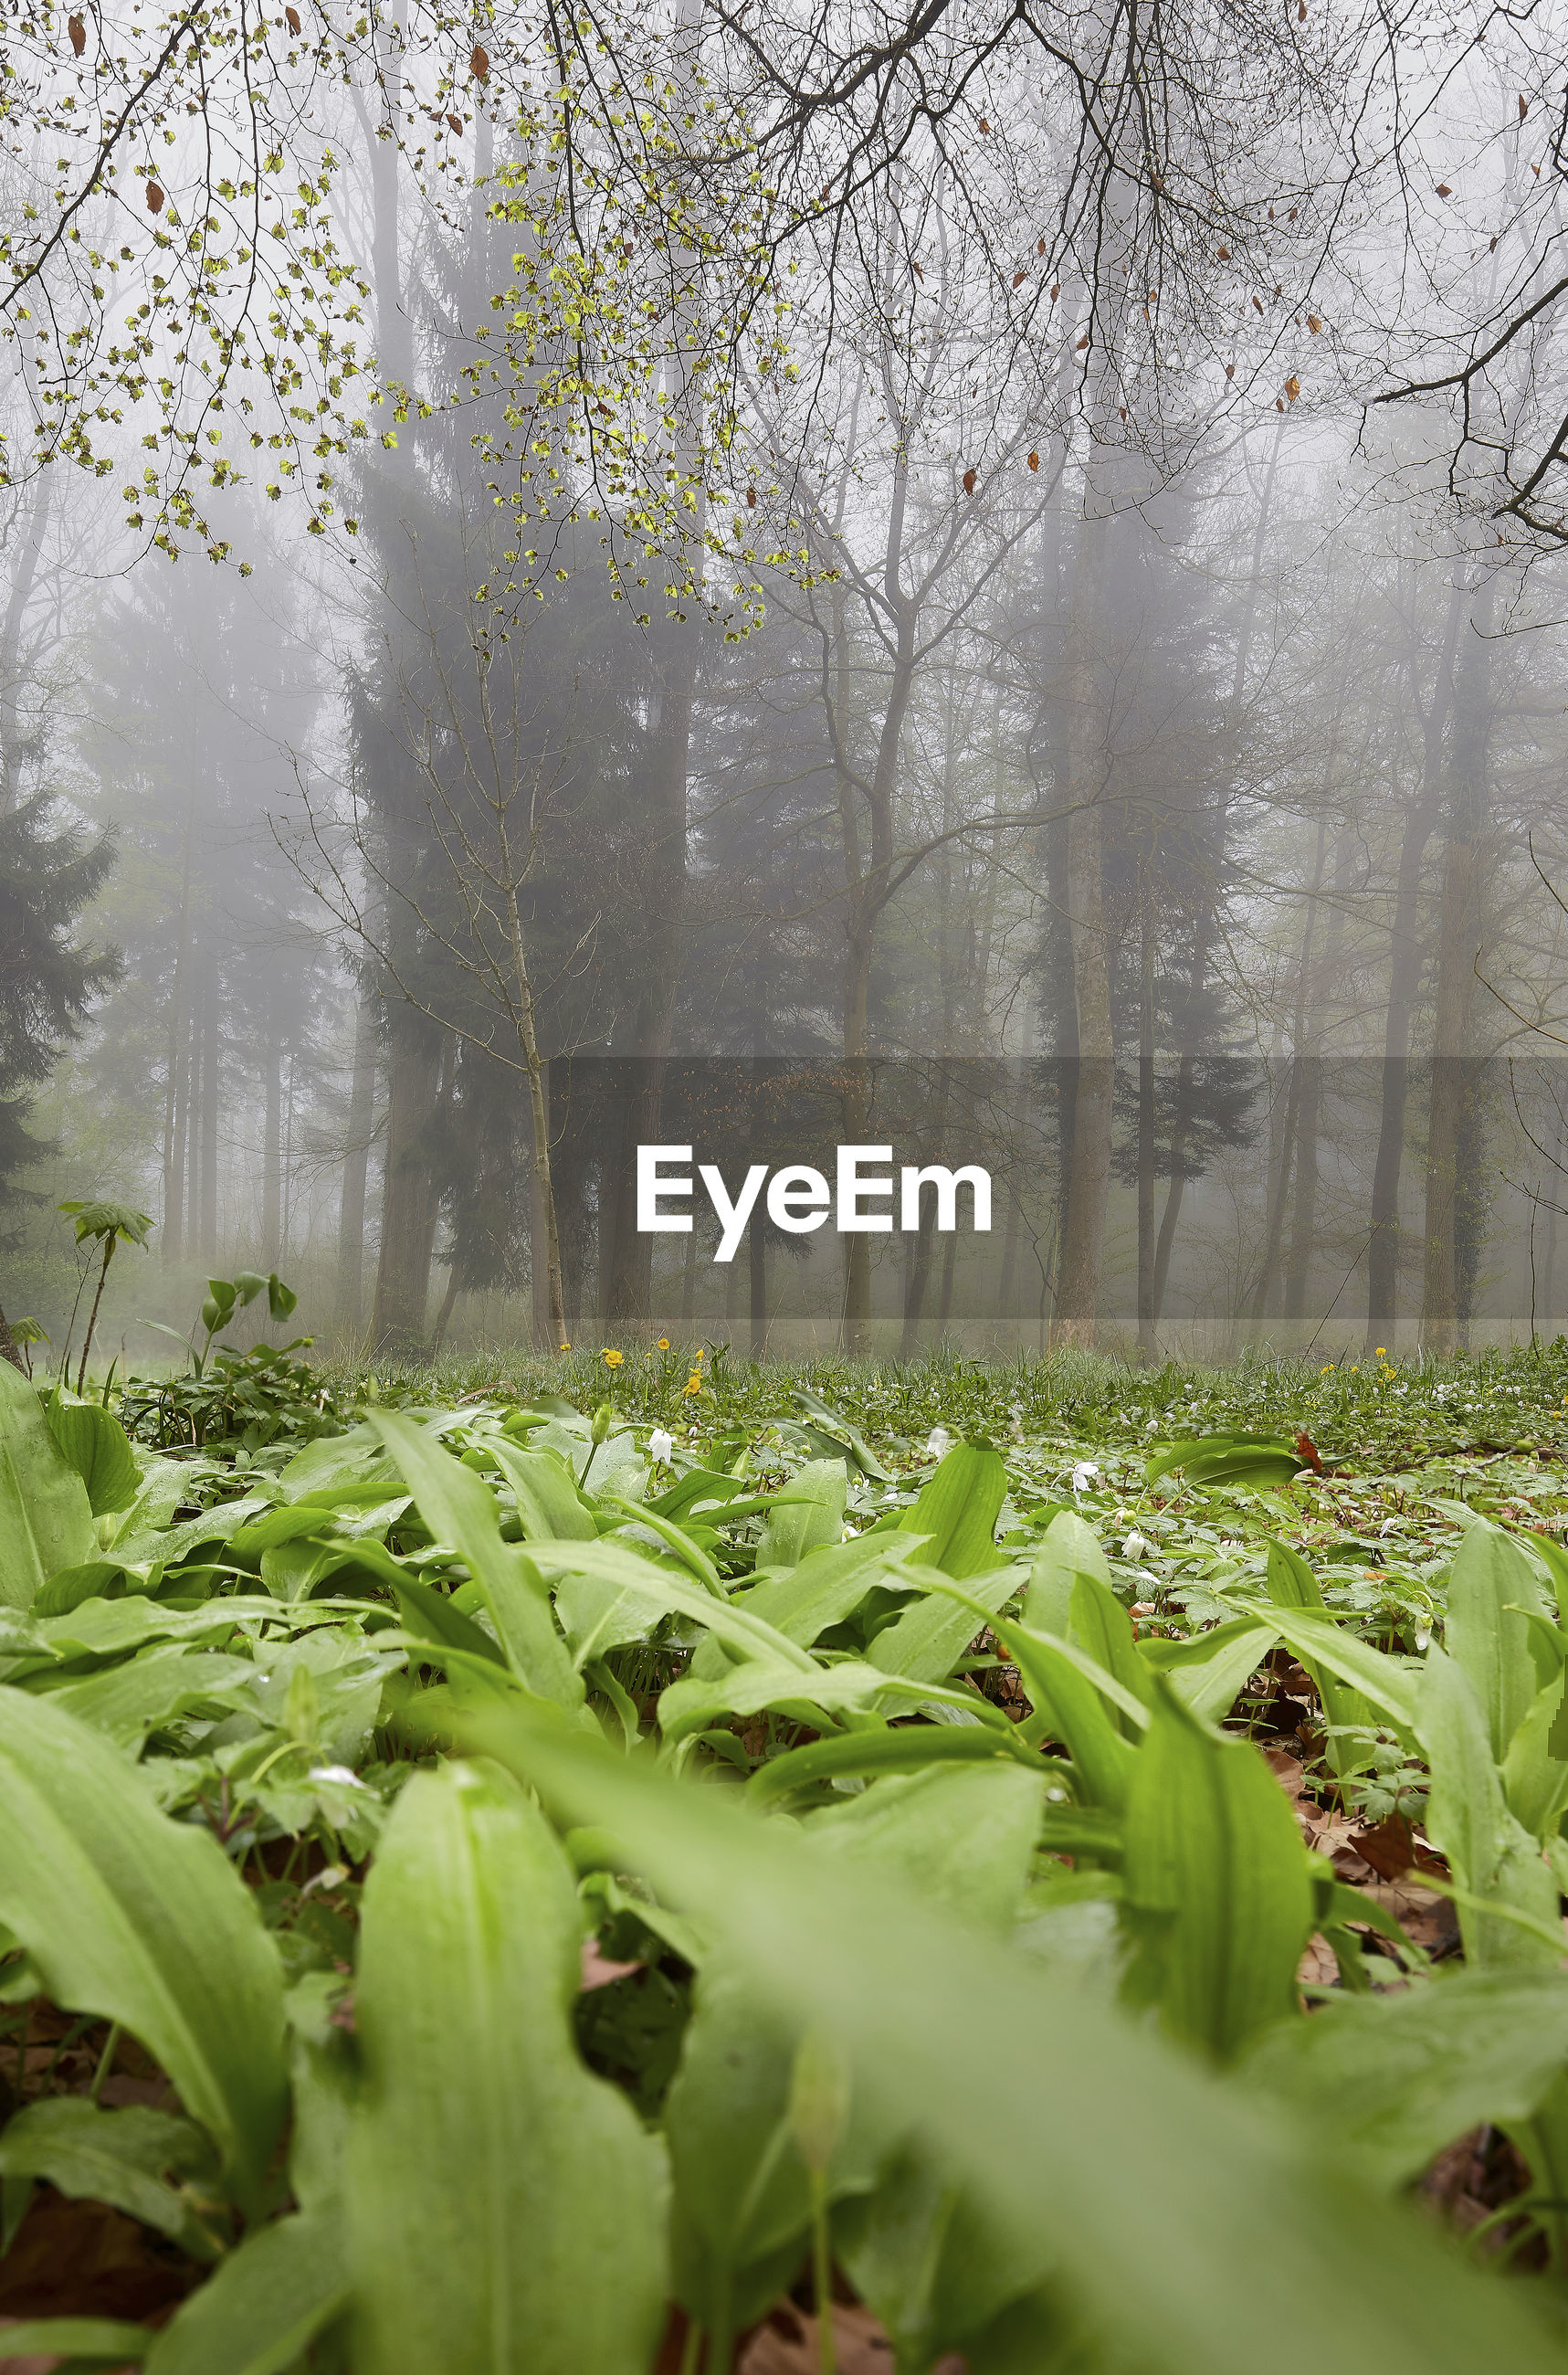 Plants and trees growing in forest during foggy weather